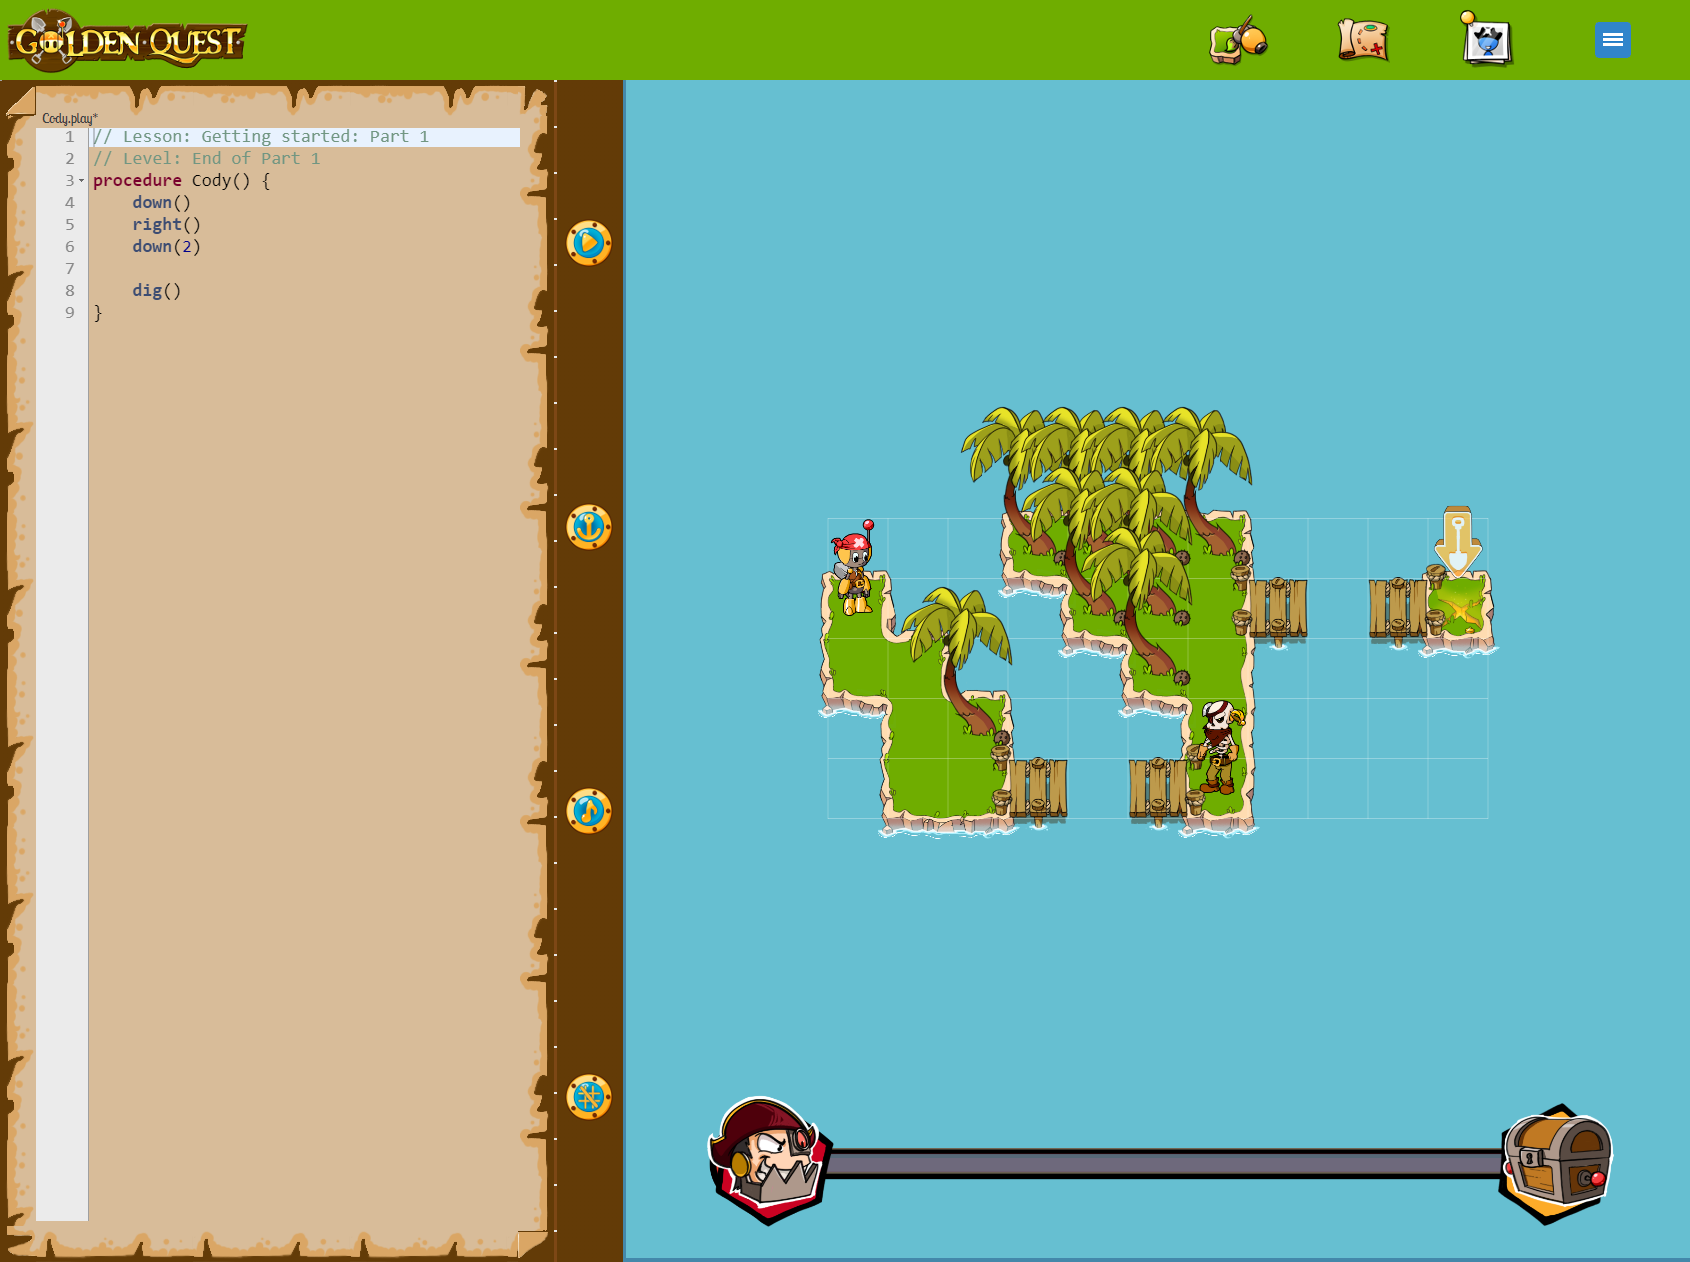 Phaser - News - Golden Quest: Take to the high seas, visit islands